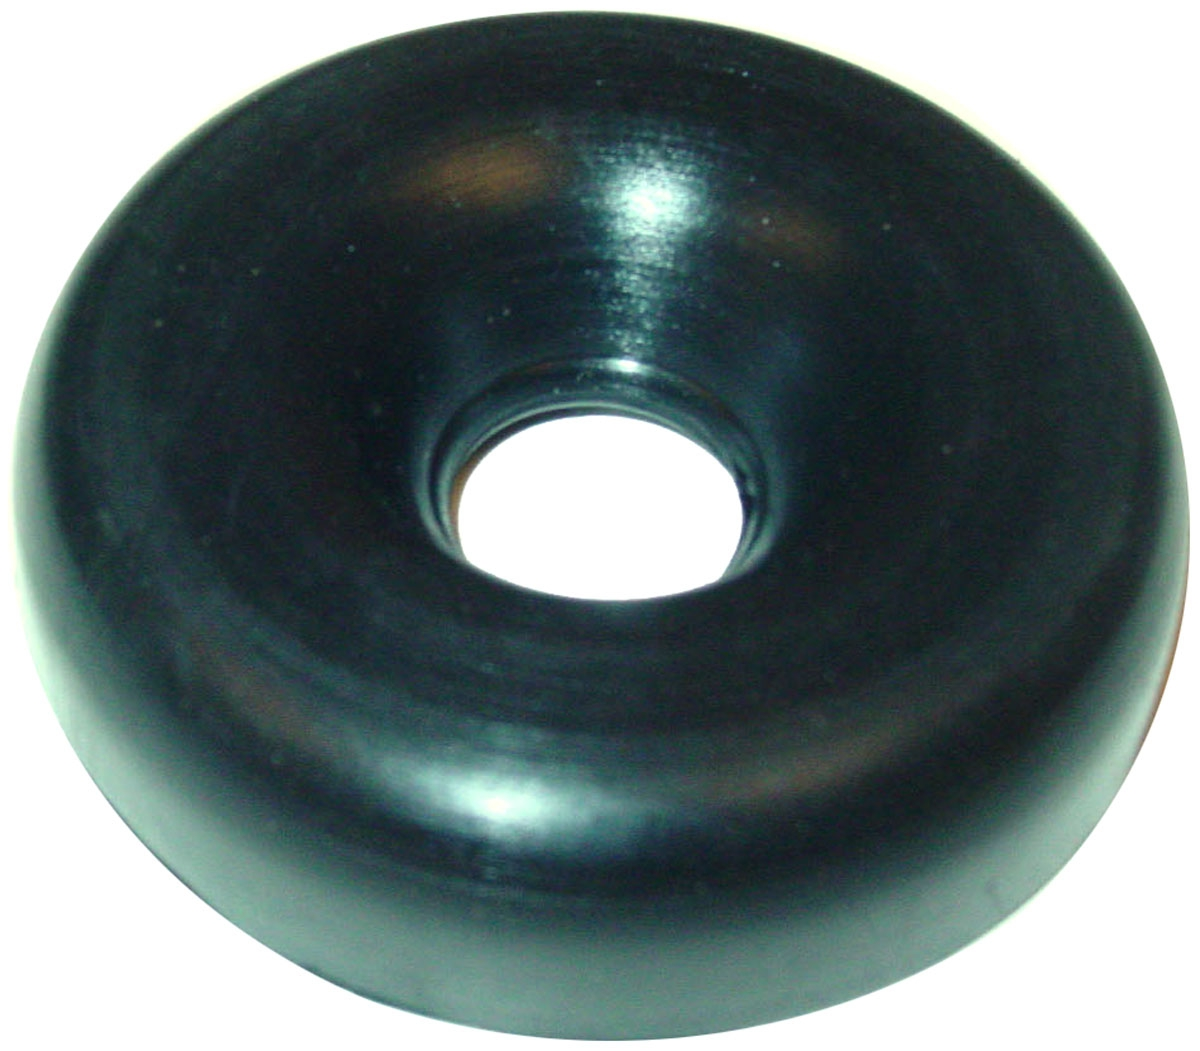 RUBBER BRAKE BOOTDUST COVER